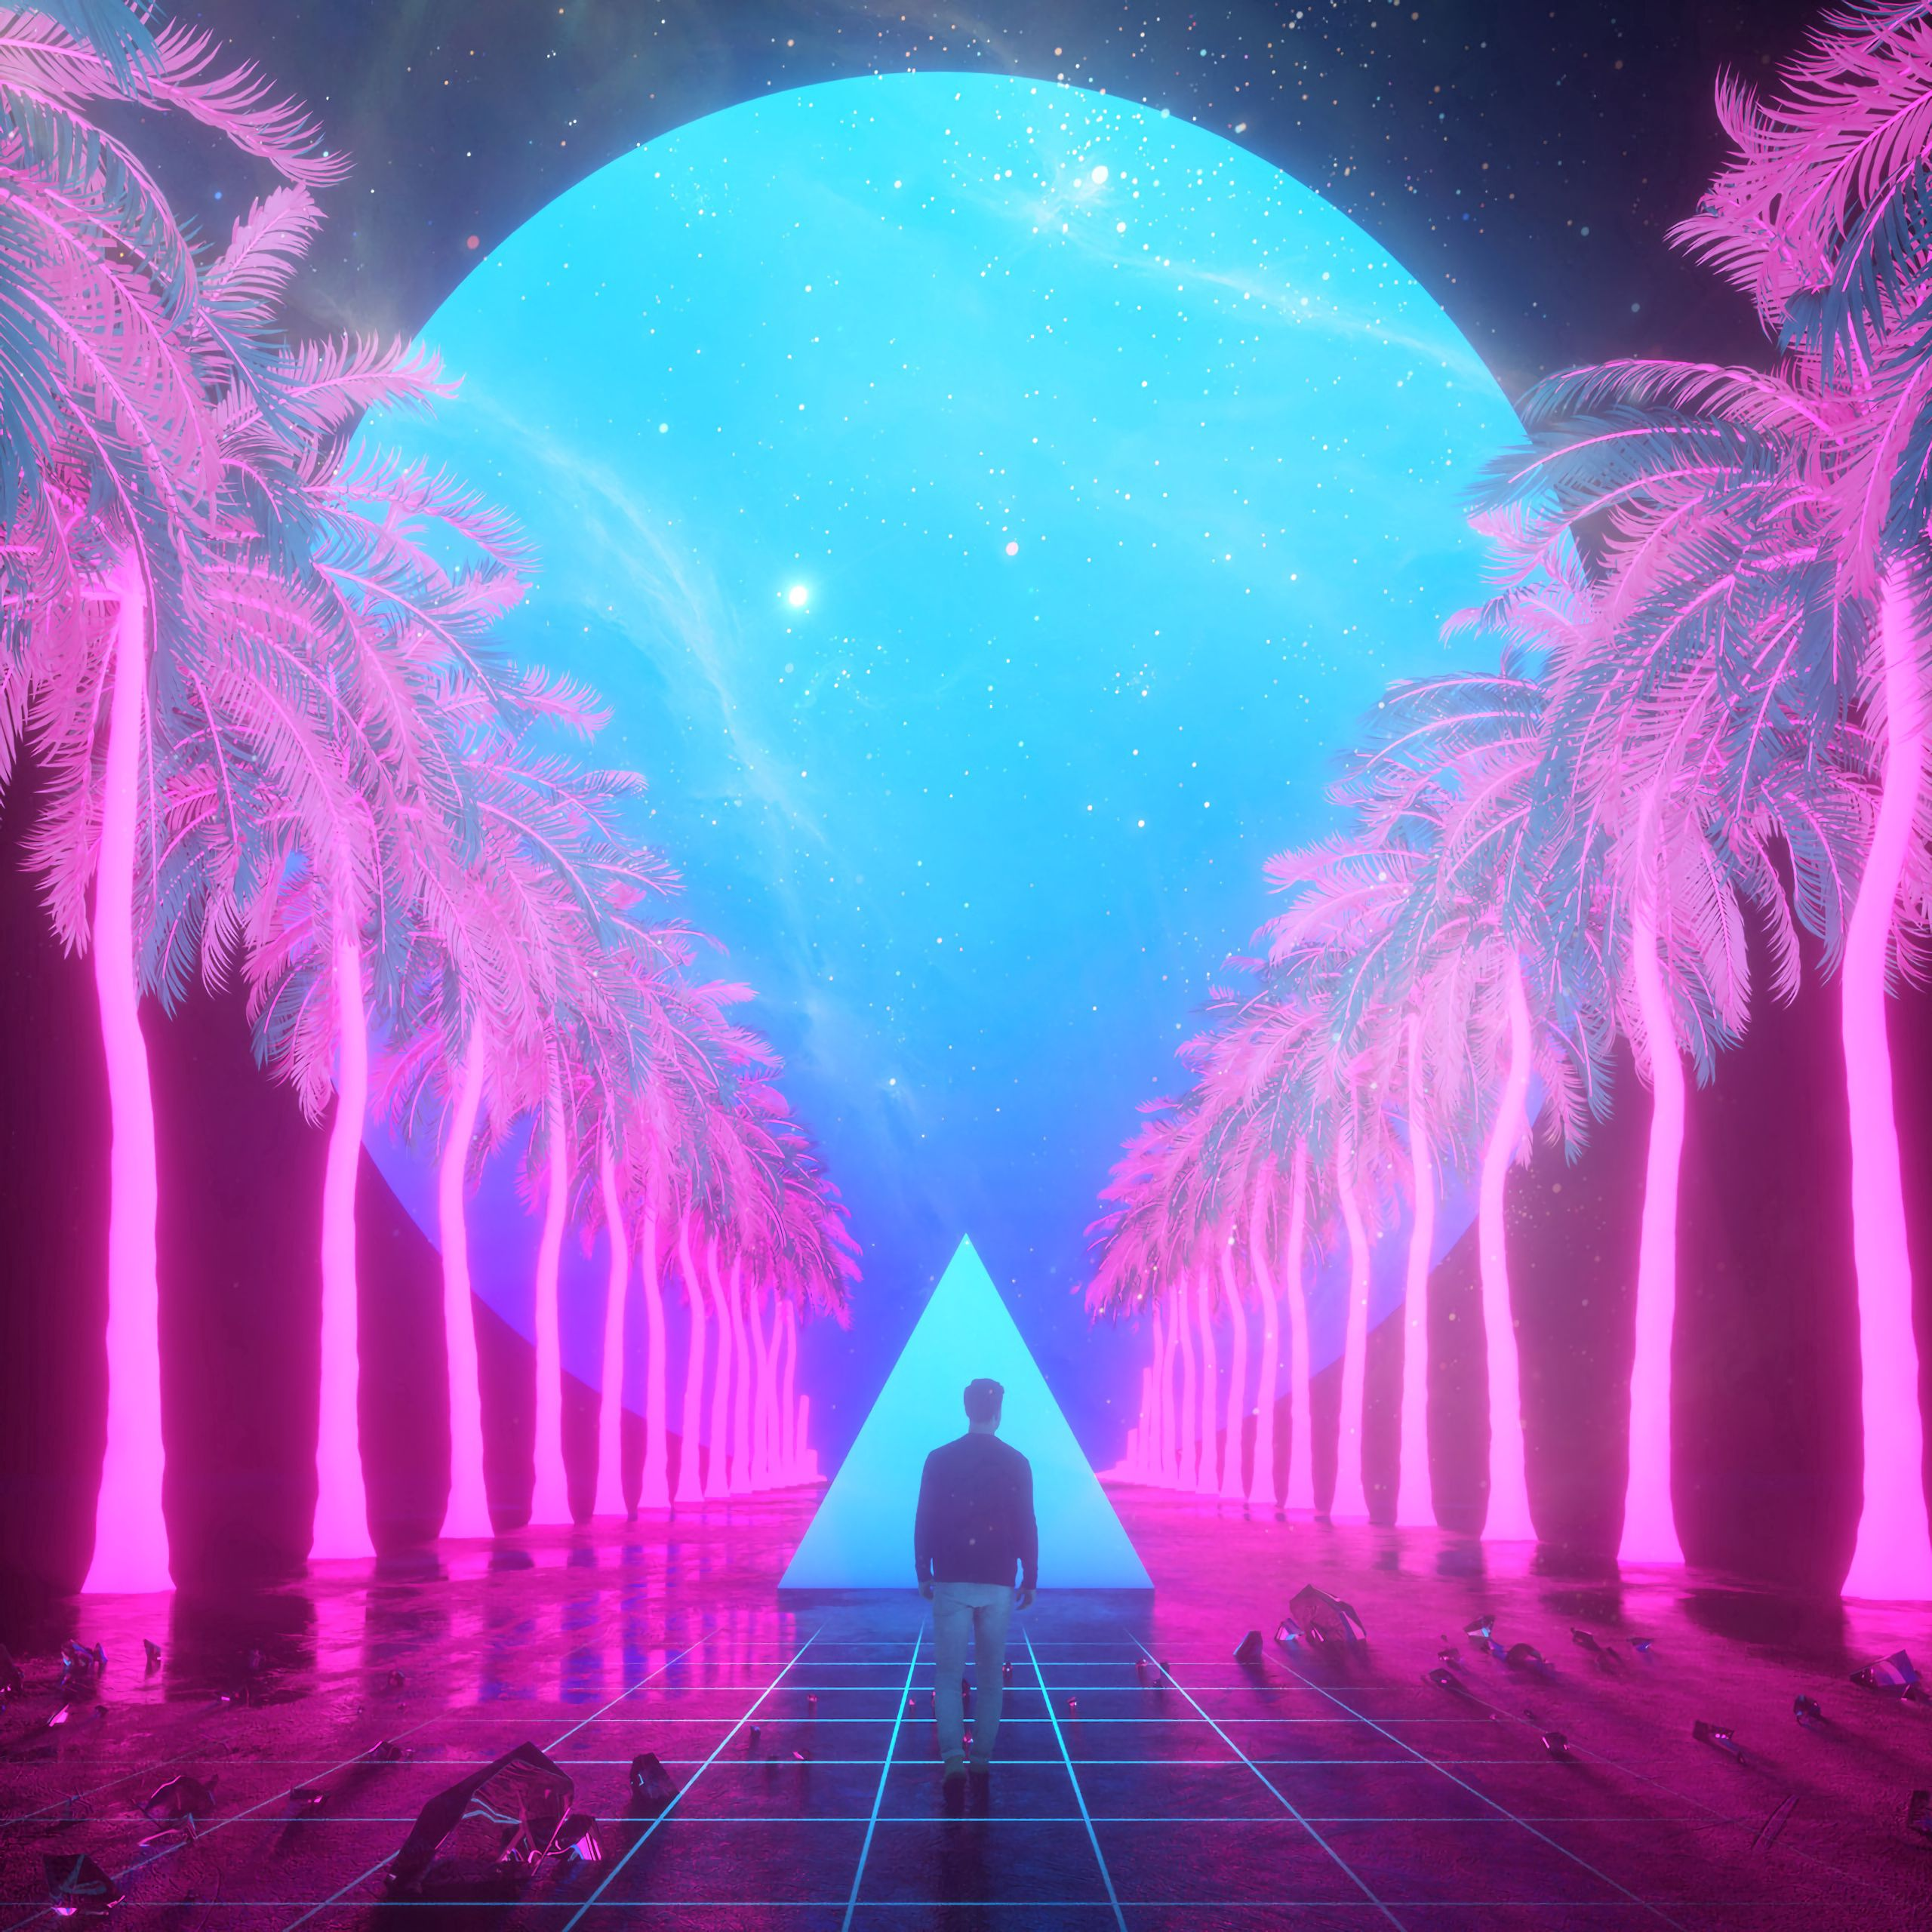 145993 download wallpaper Art, Palms, Imagination, Guy, Tile, Triangle screensavers and pictures for free